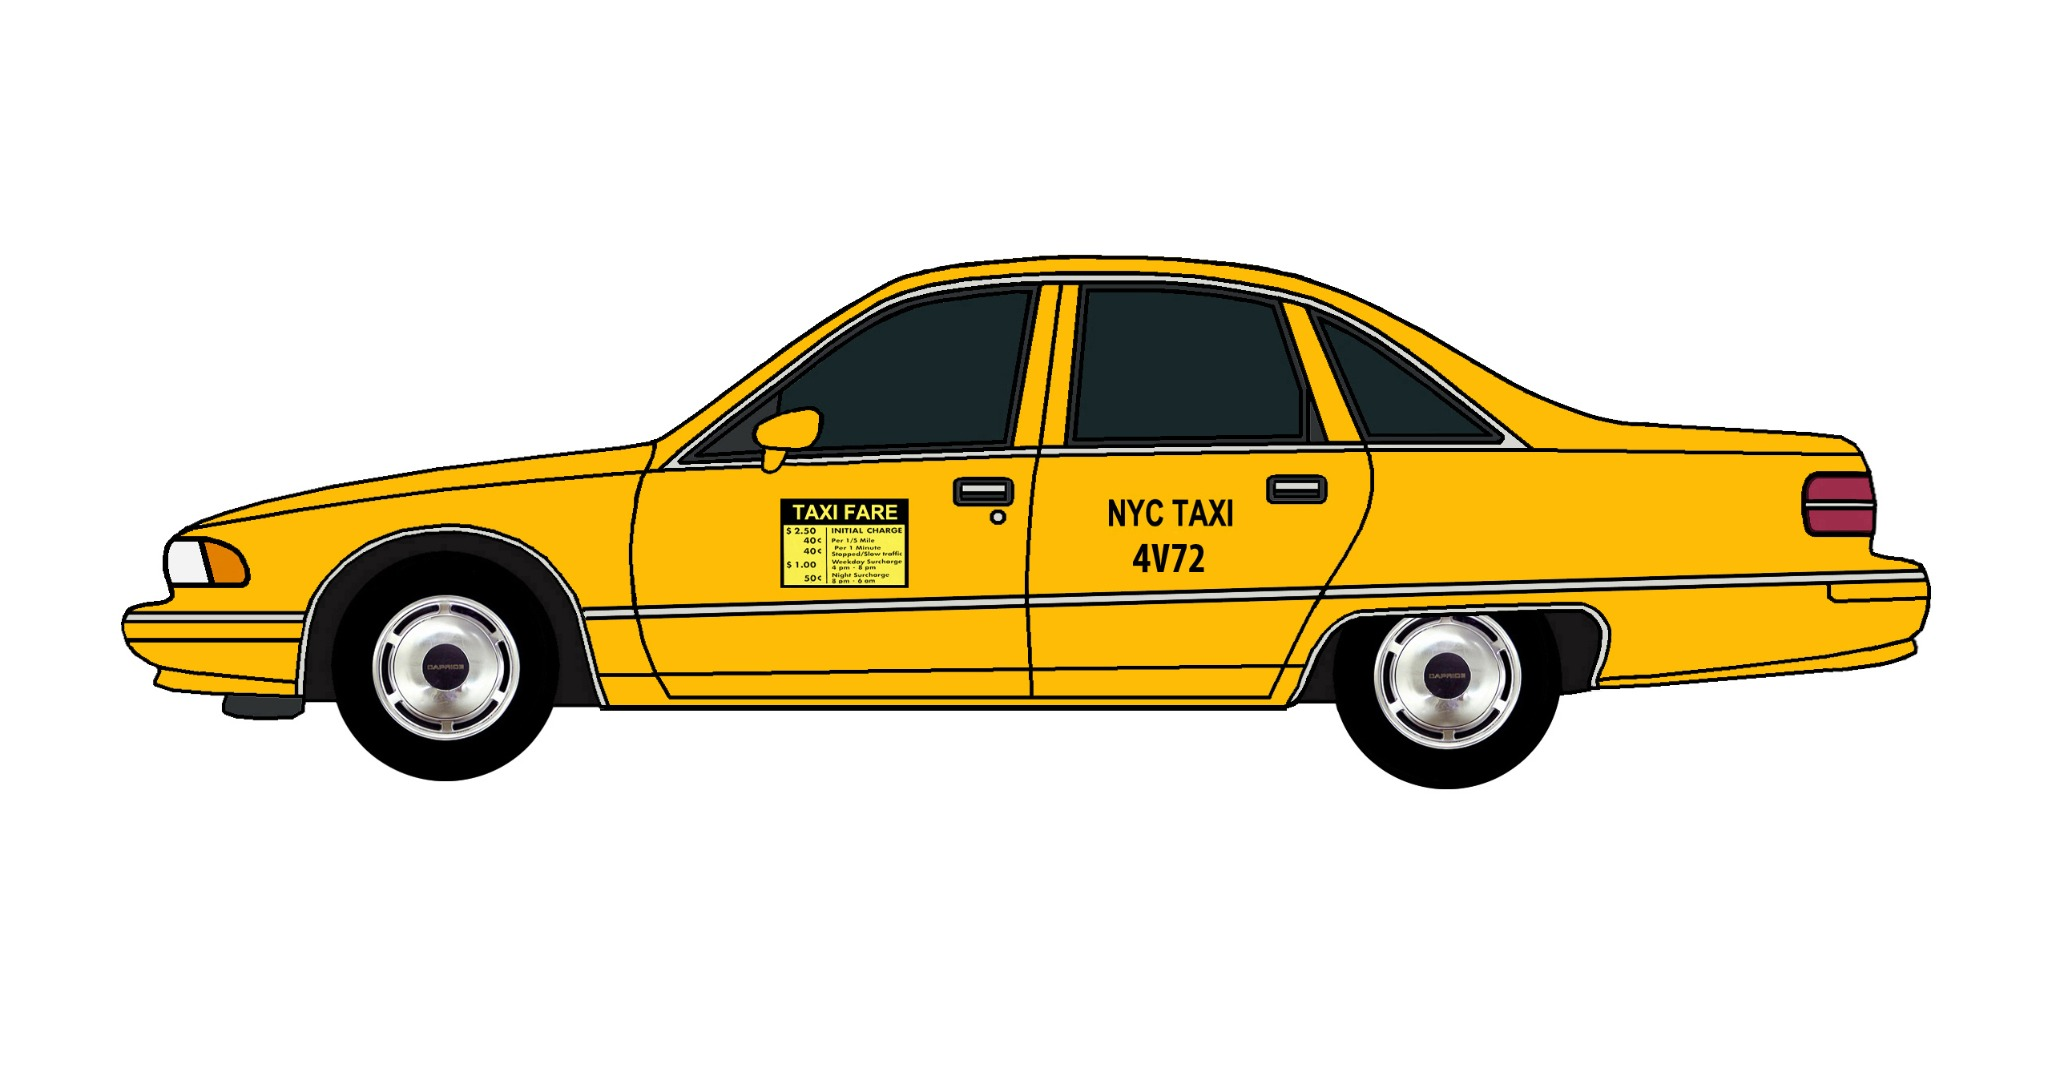 1992 Chevy Caprice NYC TAXI